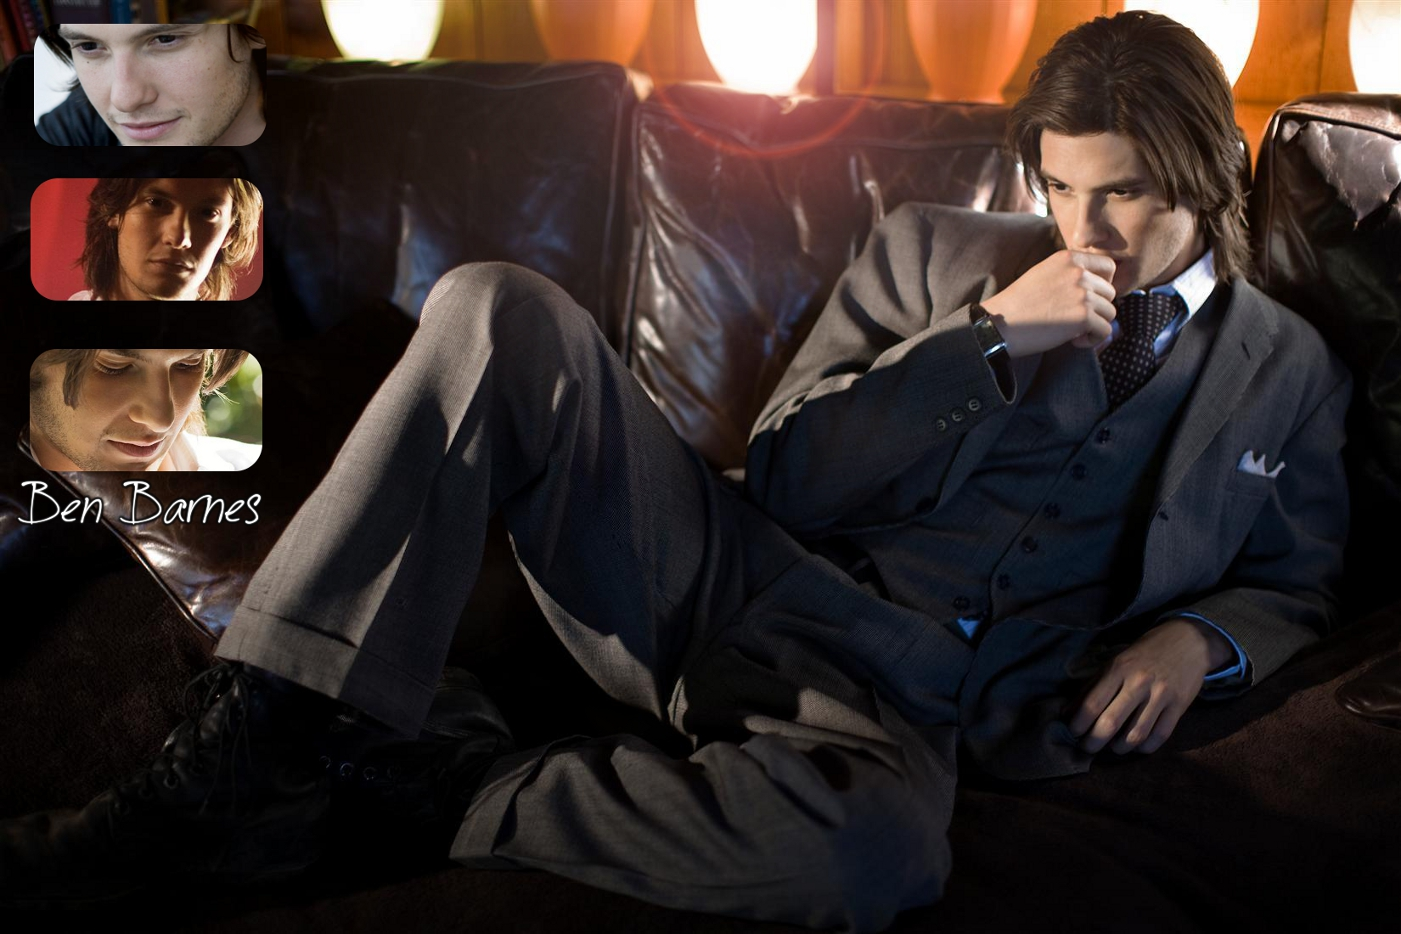 Ben Barnes Wallpaper By Cara Bailey Ilu On Deviantart